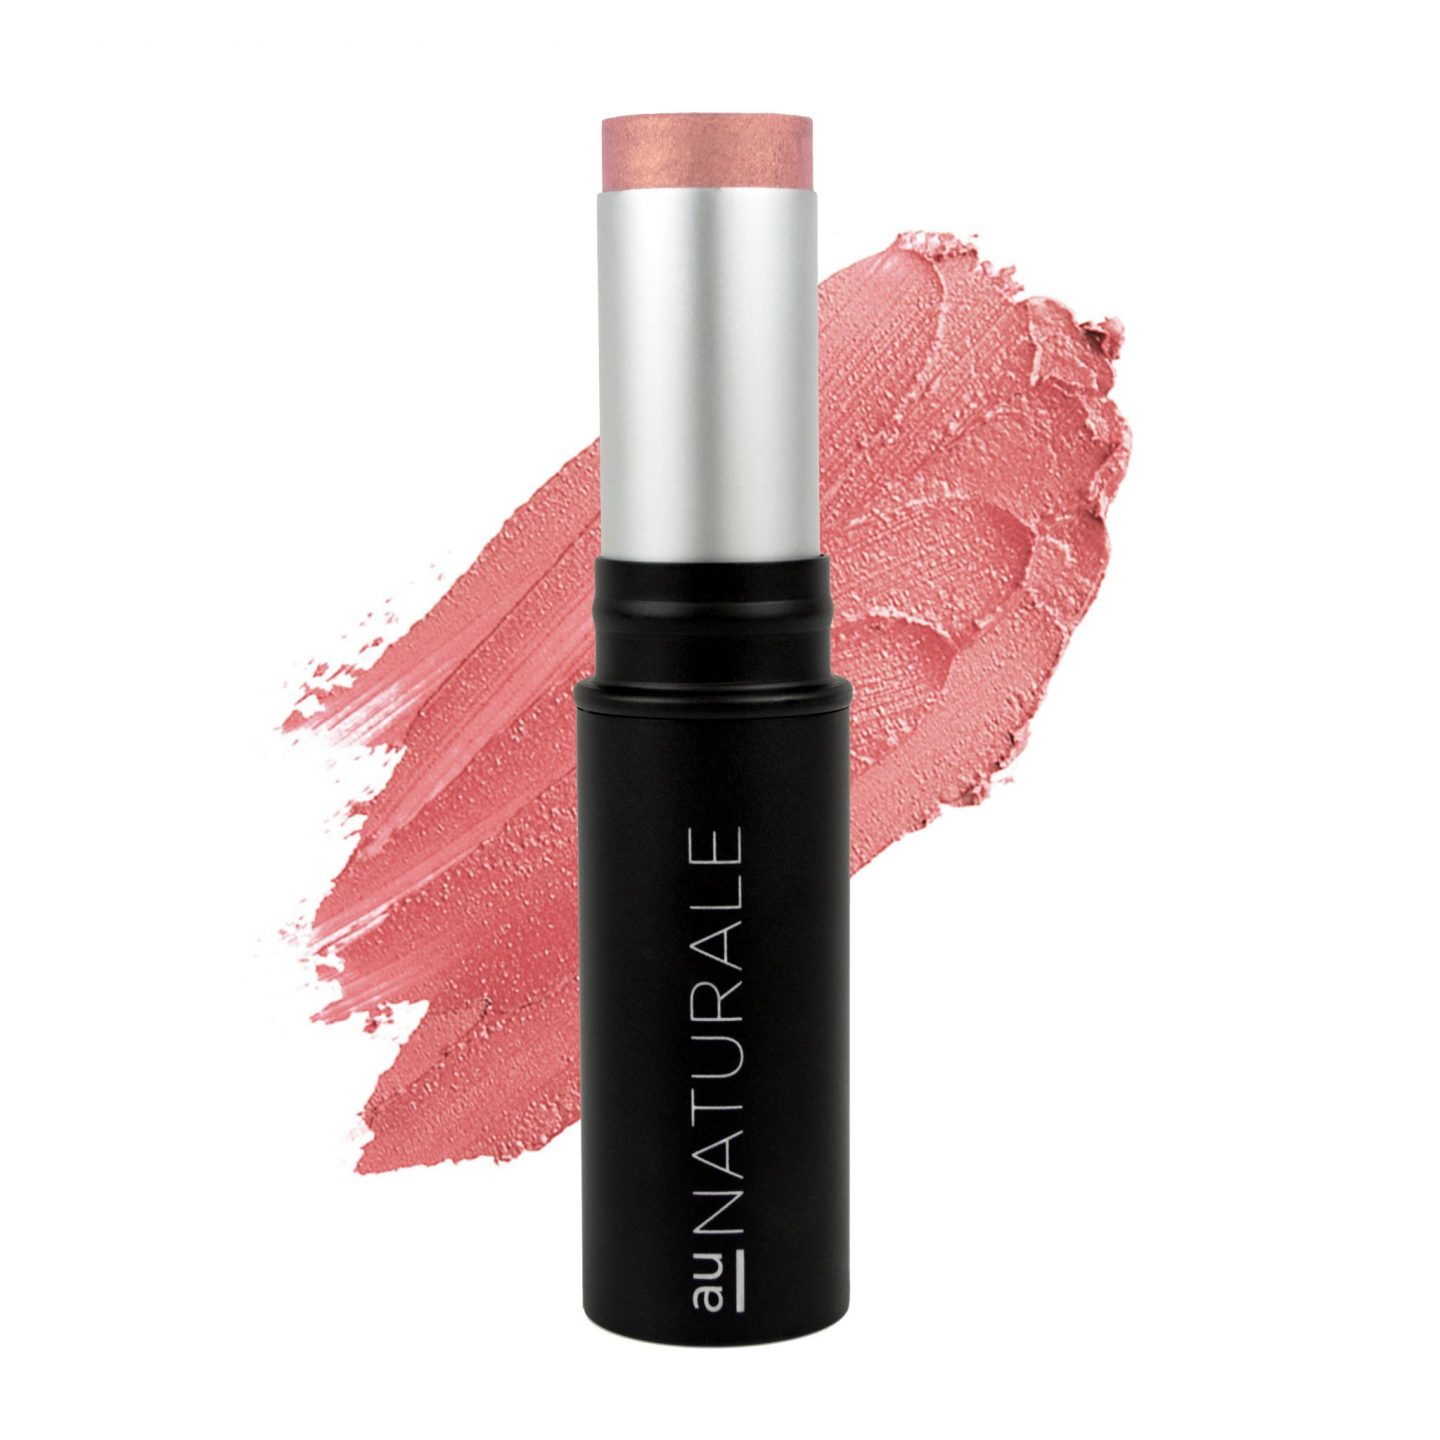 Au Naturale Anywhere Organic Blush Creme Multistick